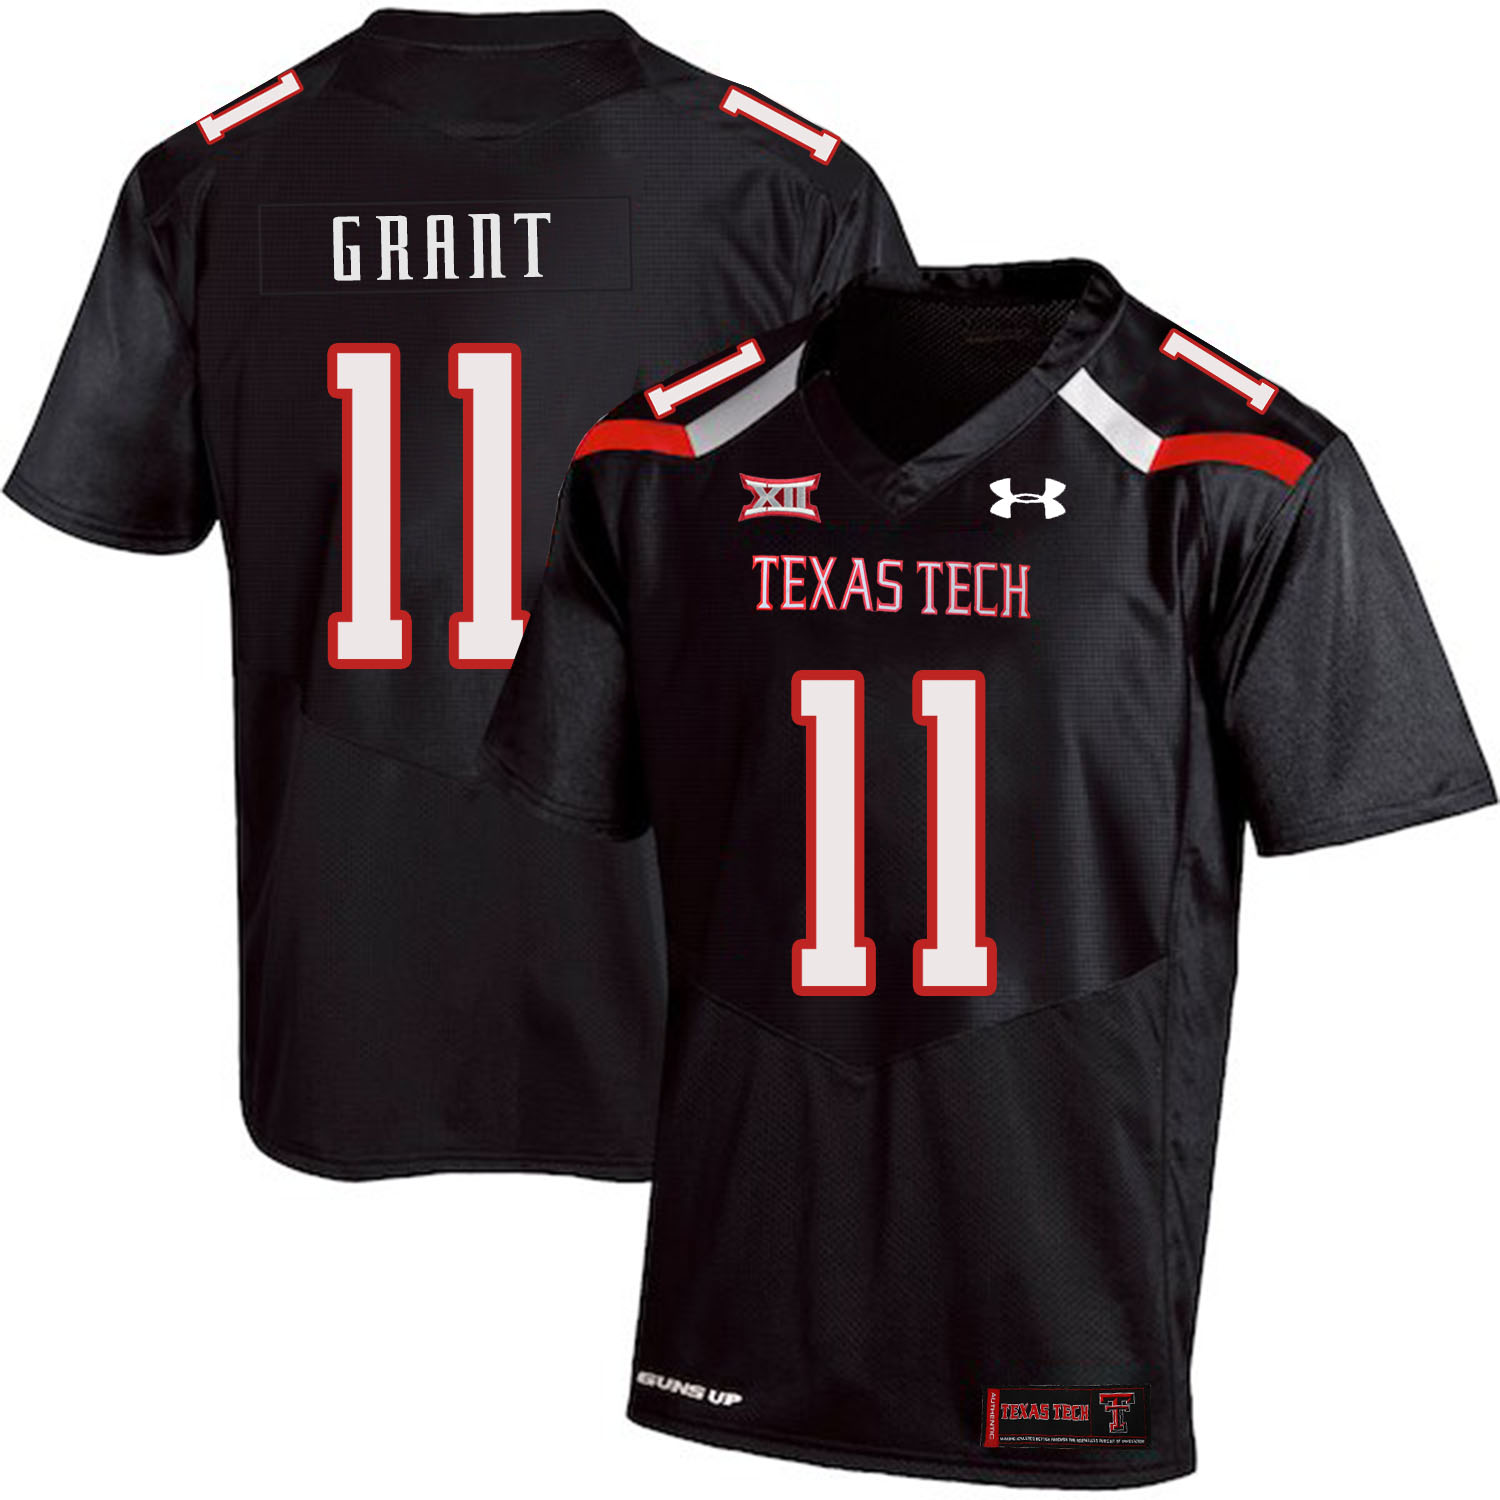 Texas Tech Red Raiders 11 Jakeem Grant Black College Football Jersey